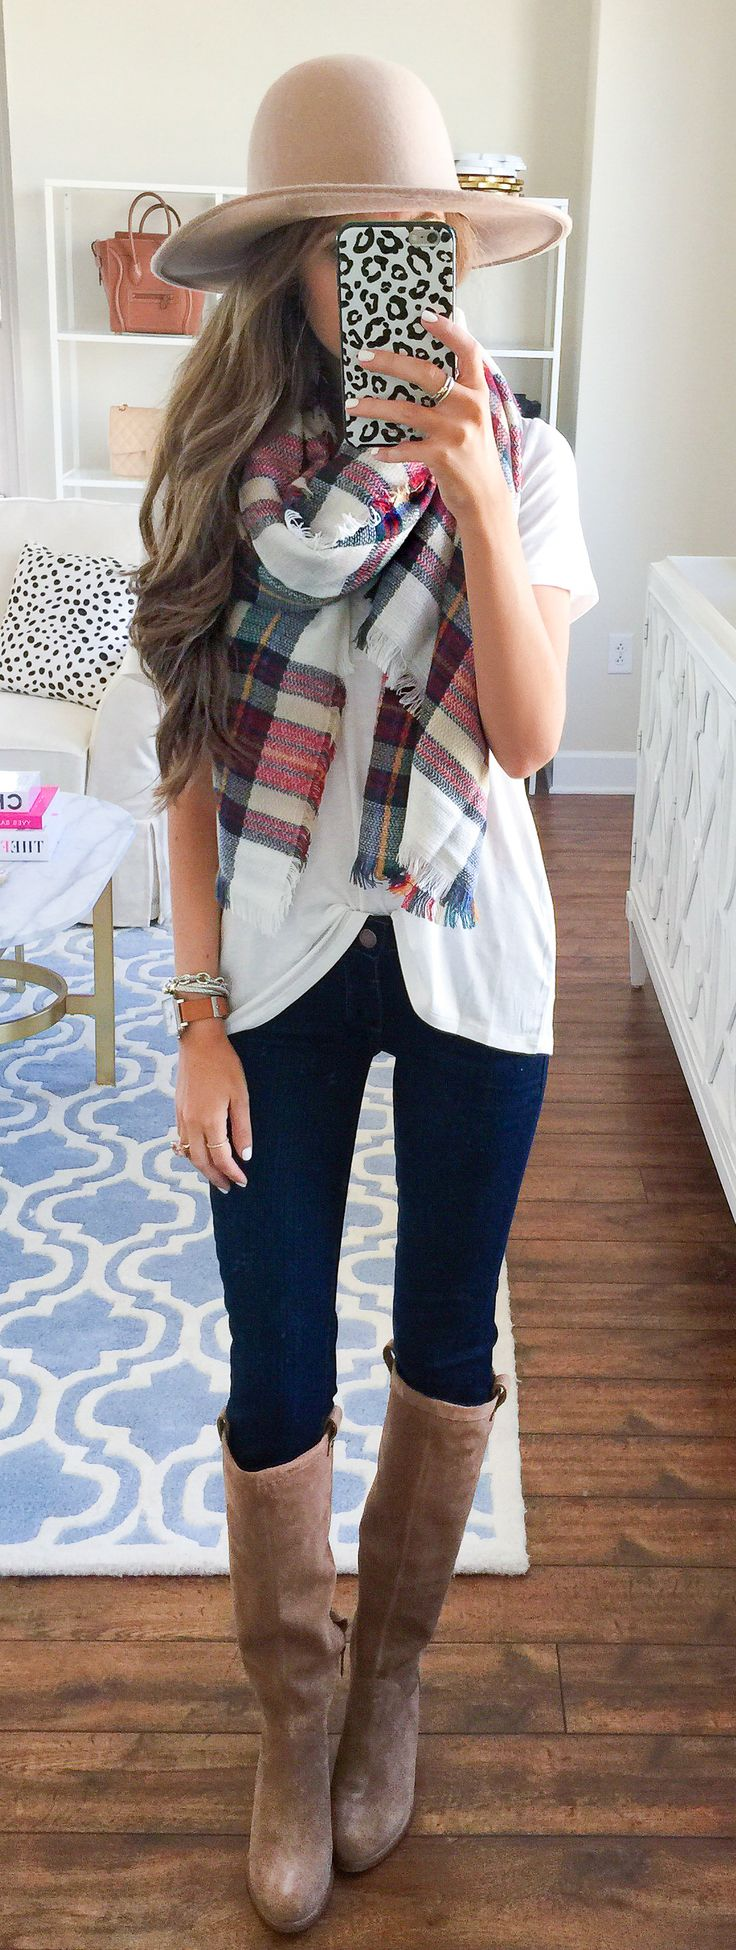 Add a plaid scarf to a simple tee to add some color and pattern to your look!